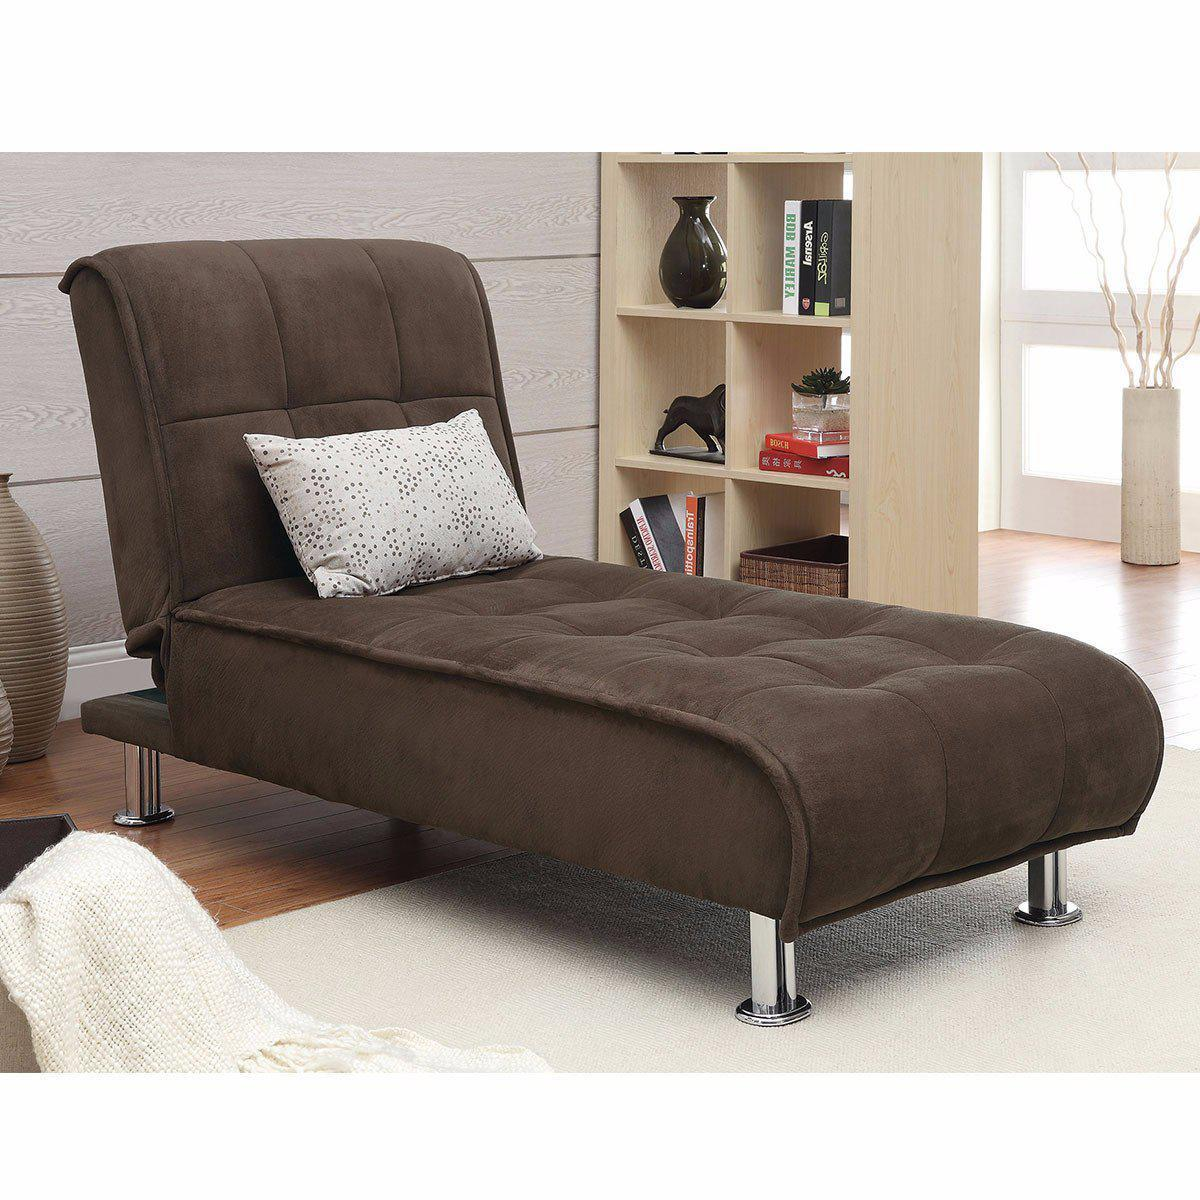 Ellwood Futon Chaise-Jennifer Furniture